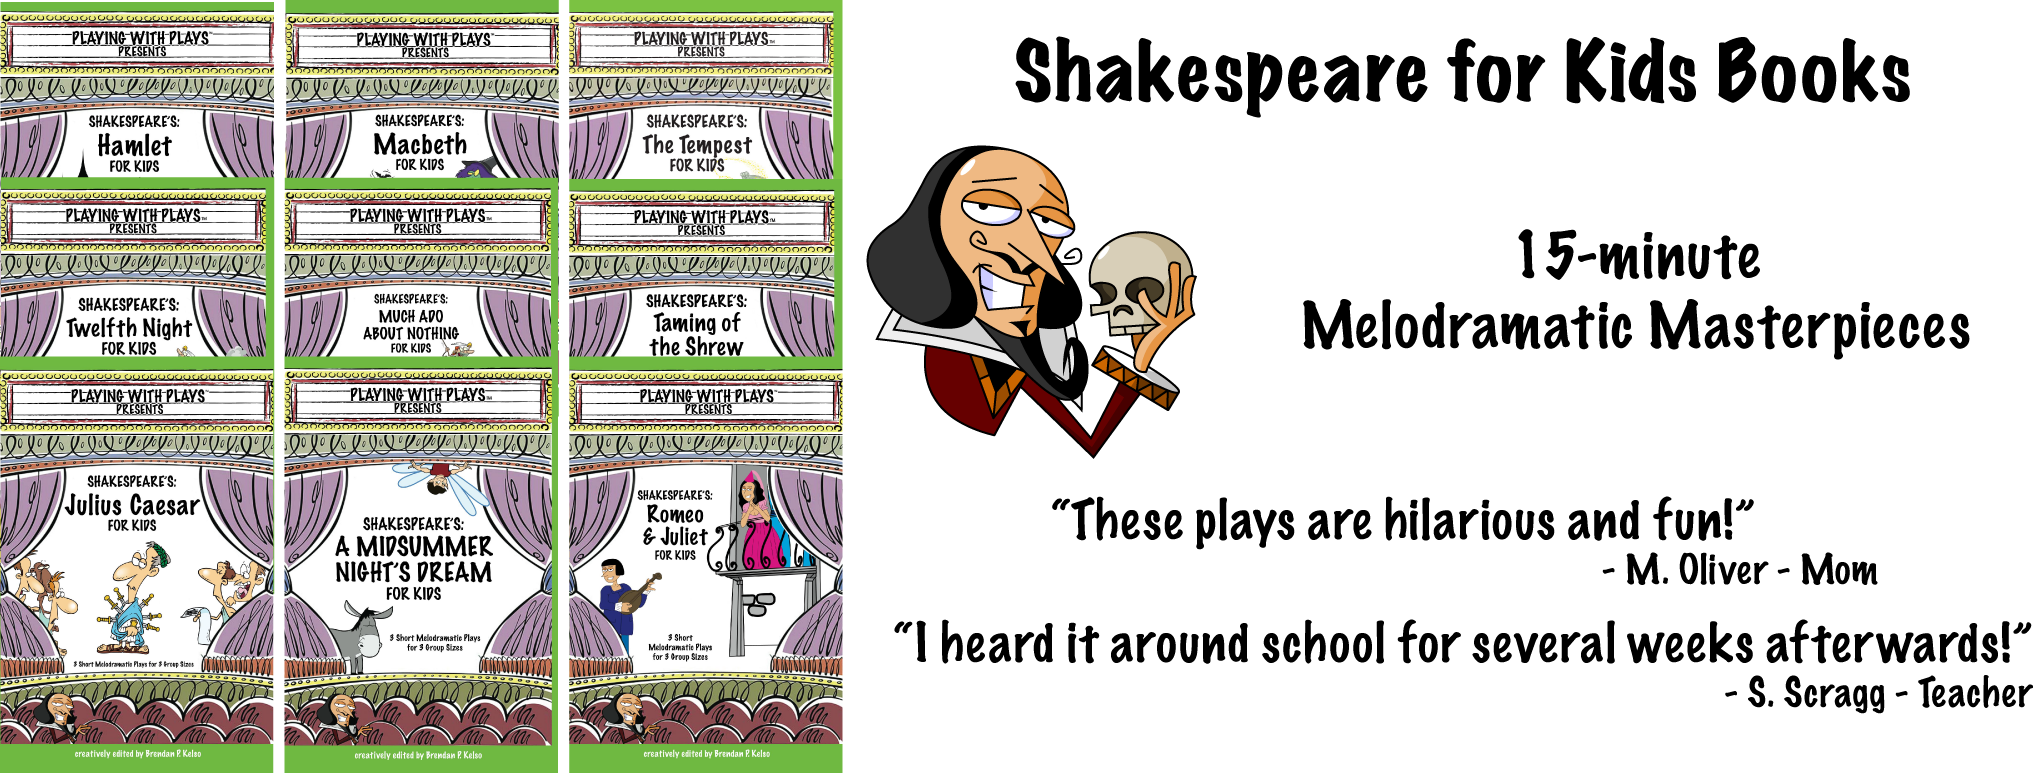 Shakespeare for kids books. Theatre clipart playscript